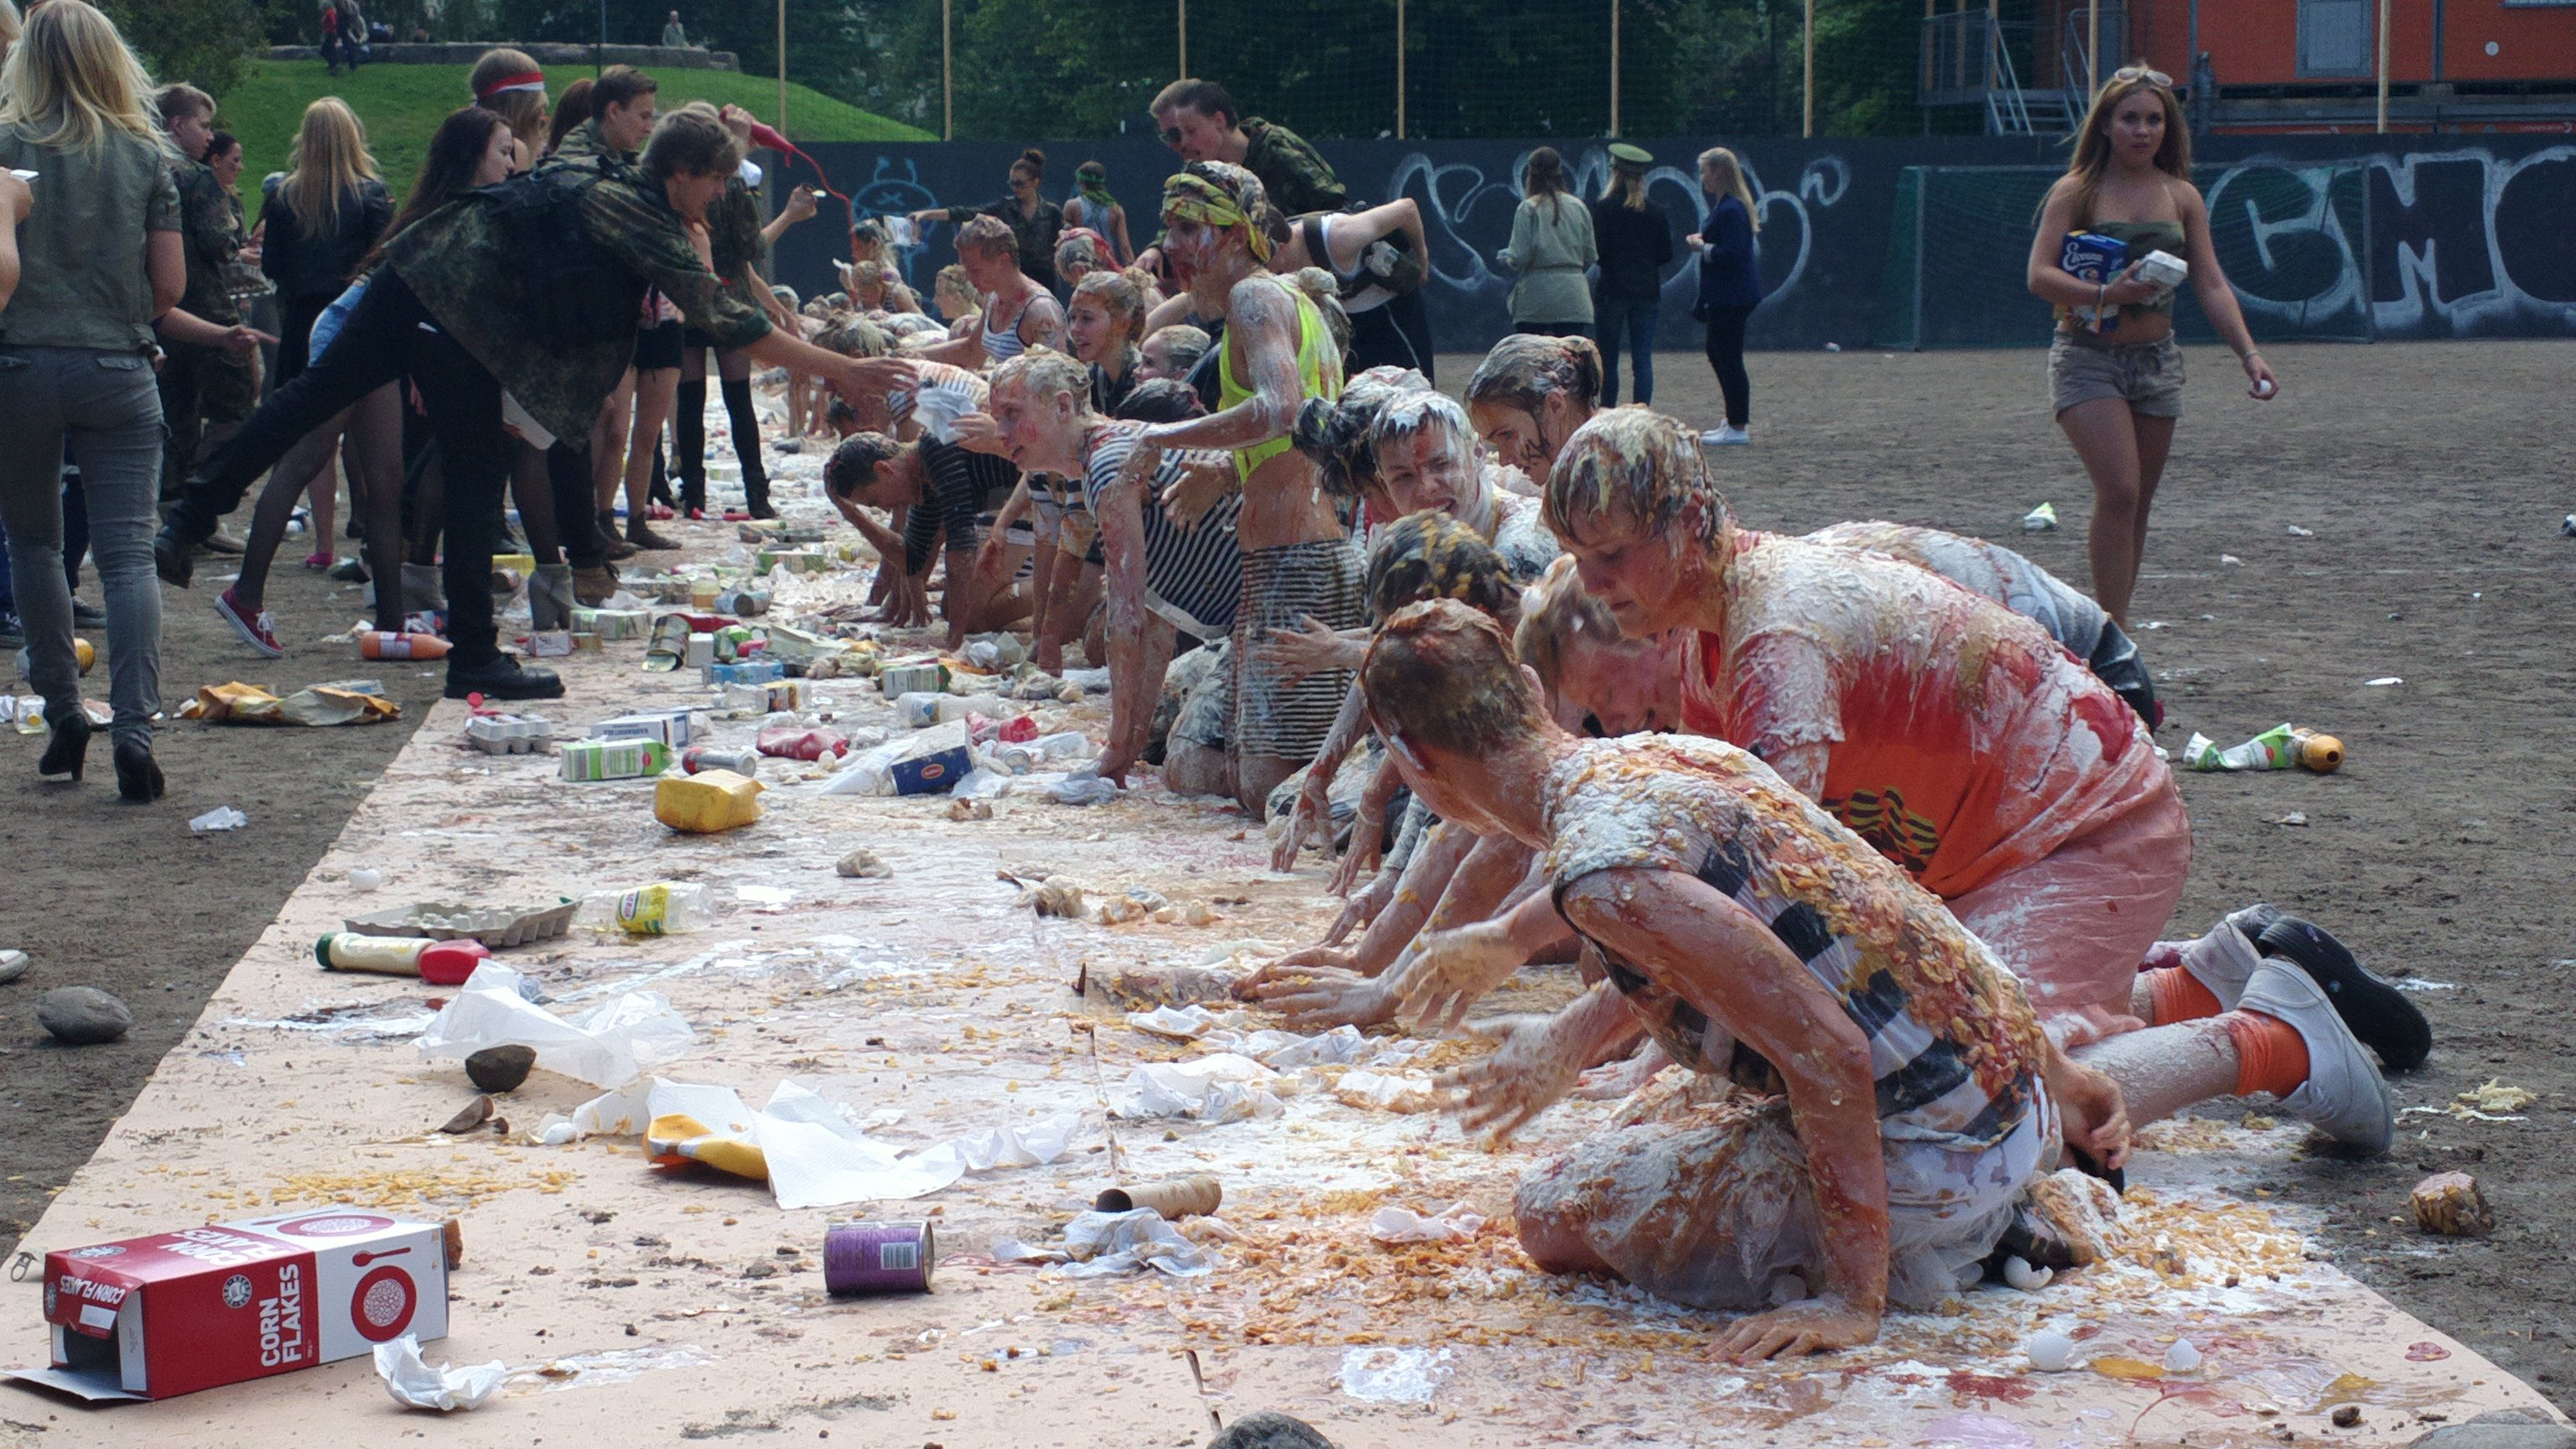 11 Disturbing Hazing Rituals That Actually Happen